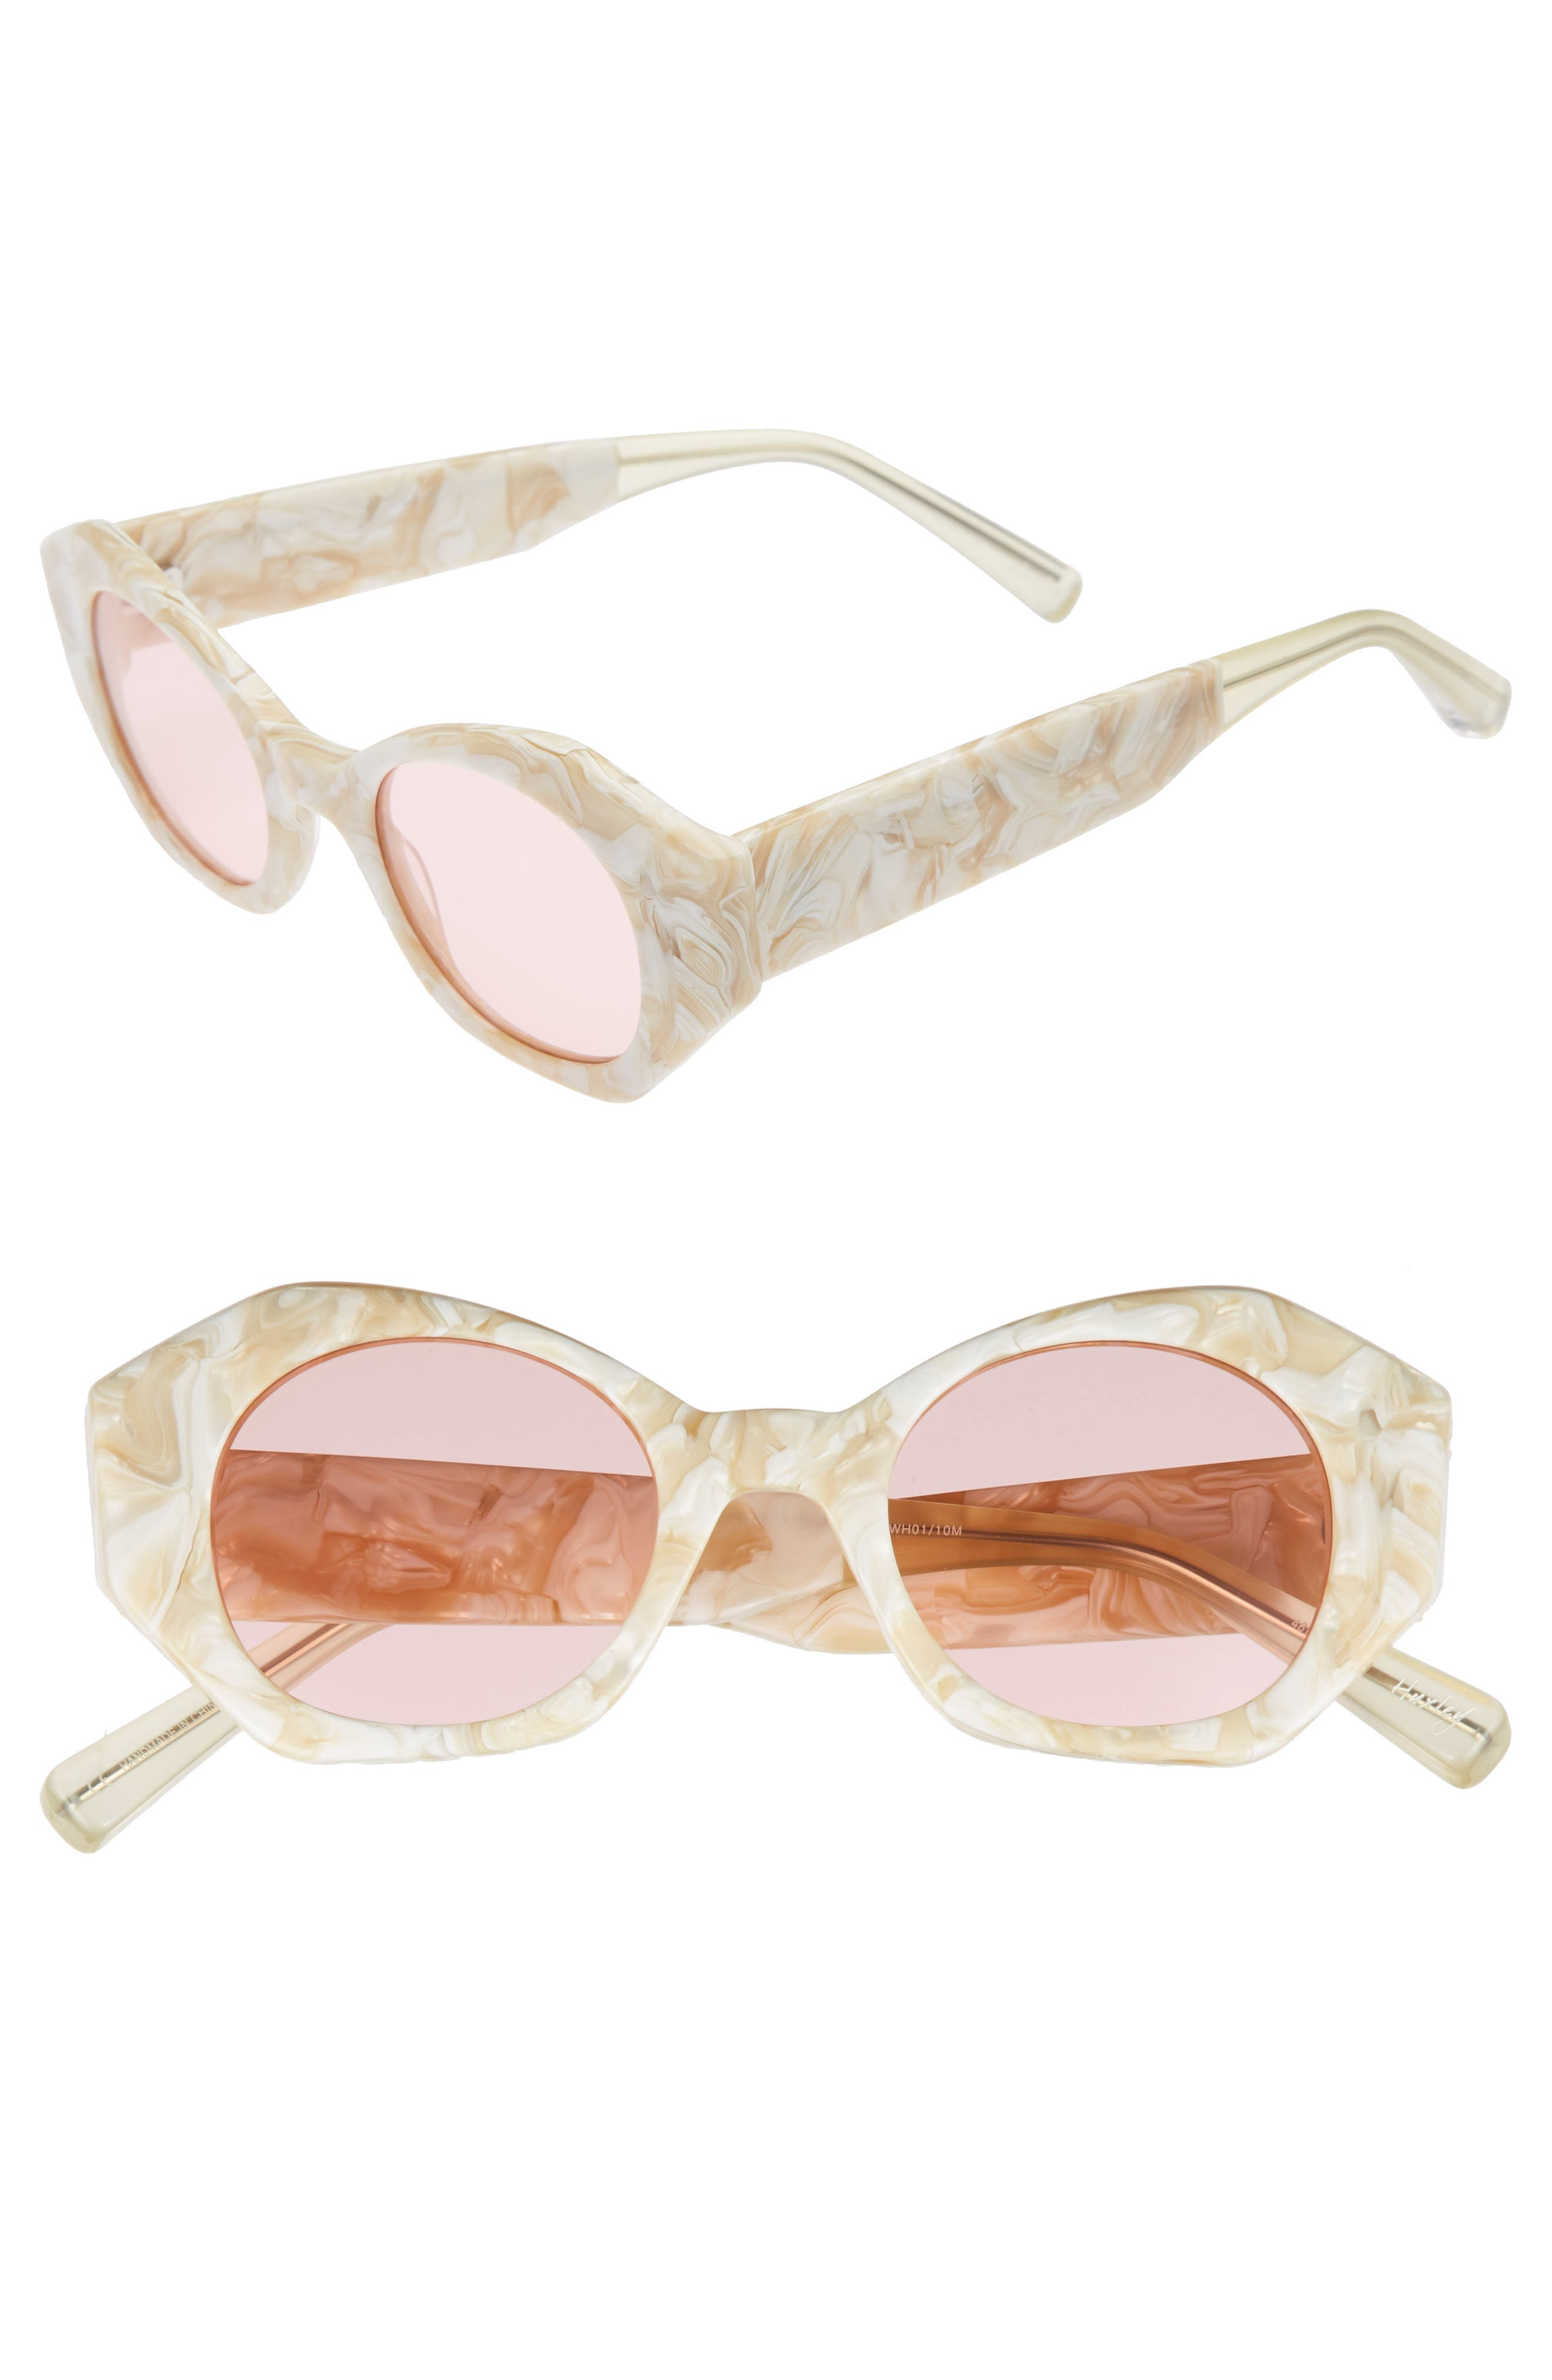 Huxley 46mm Geometric Sunglasses,                         Main,                         color, White/ Pink